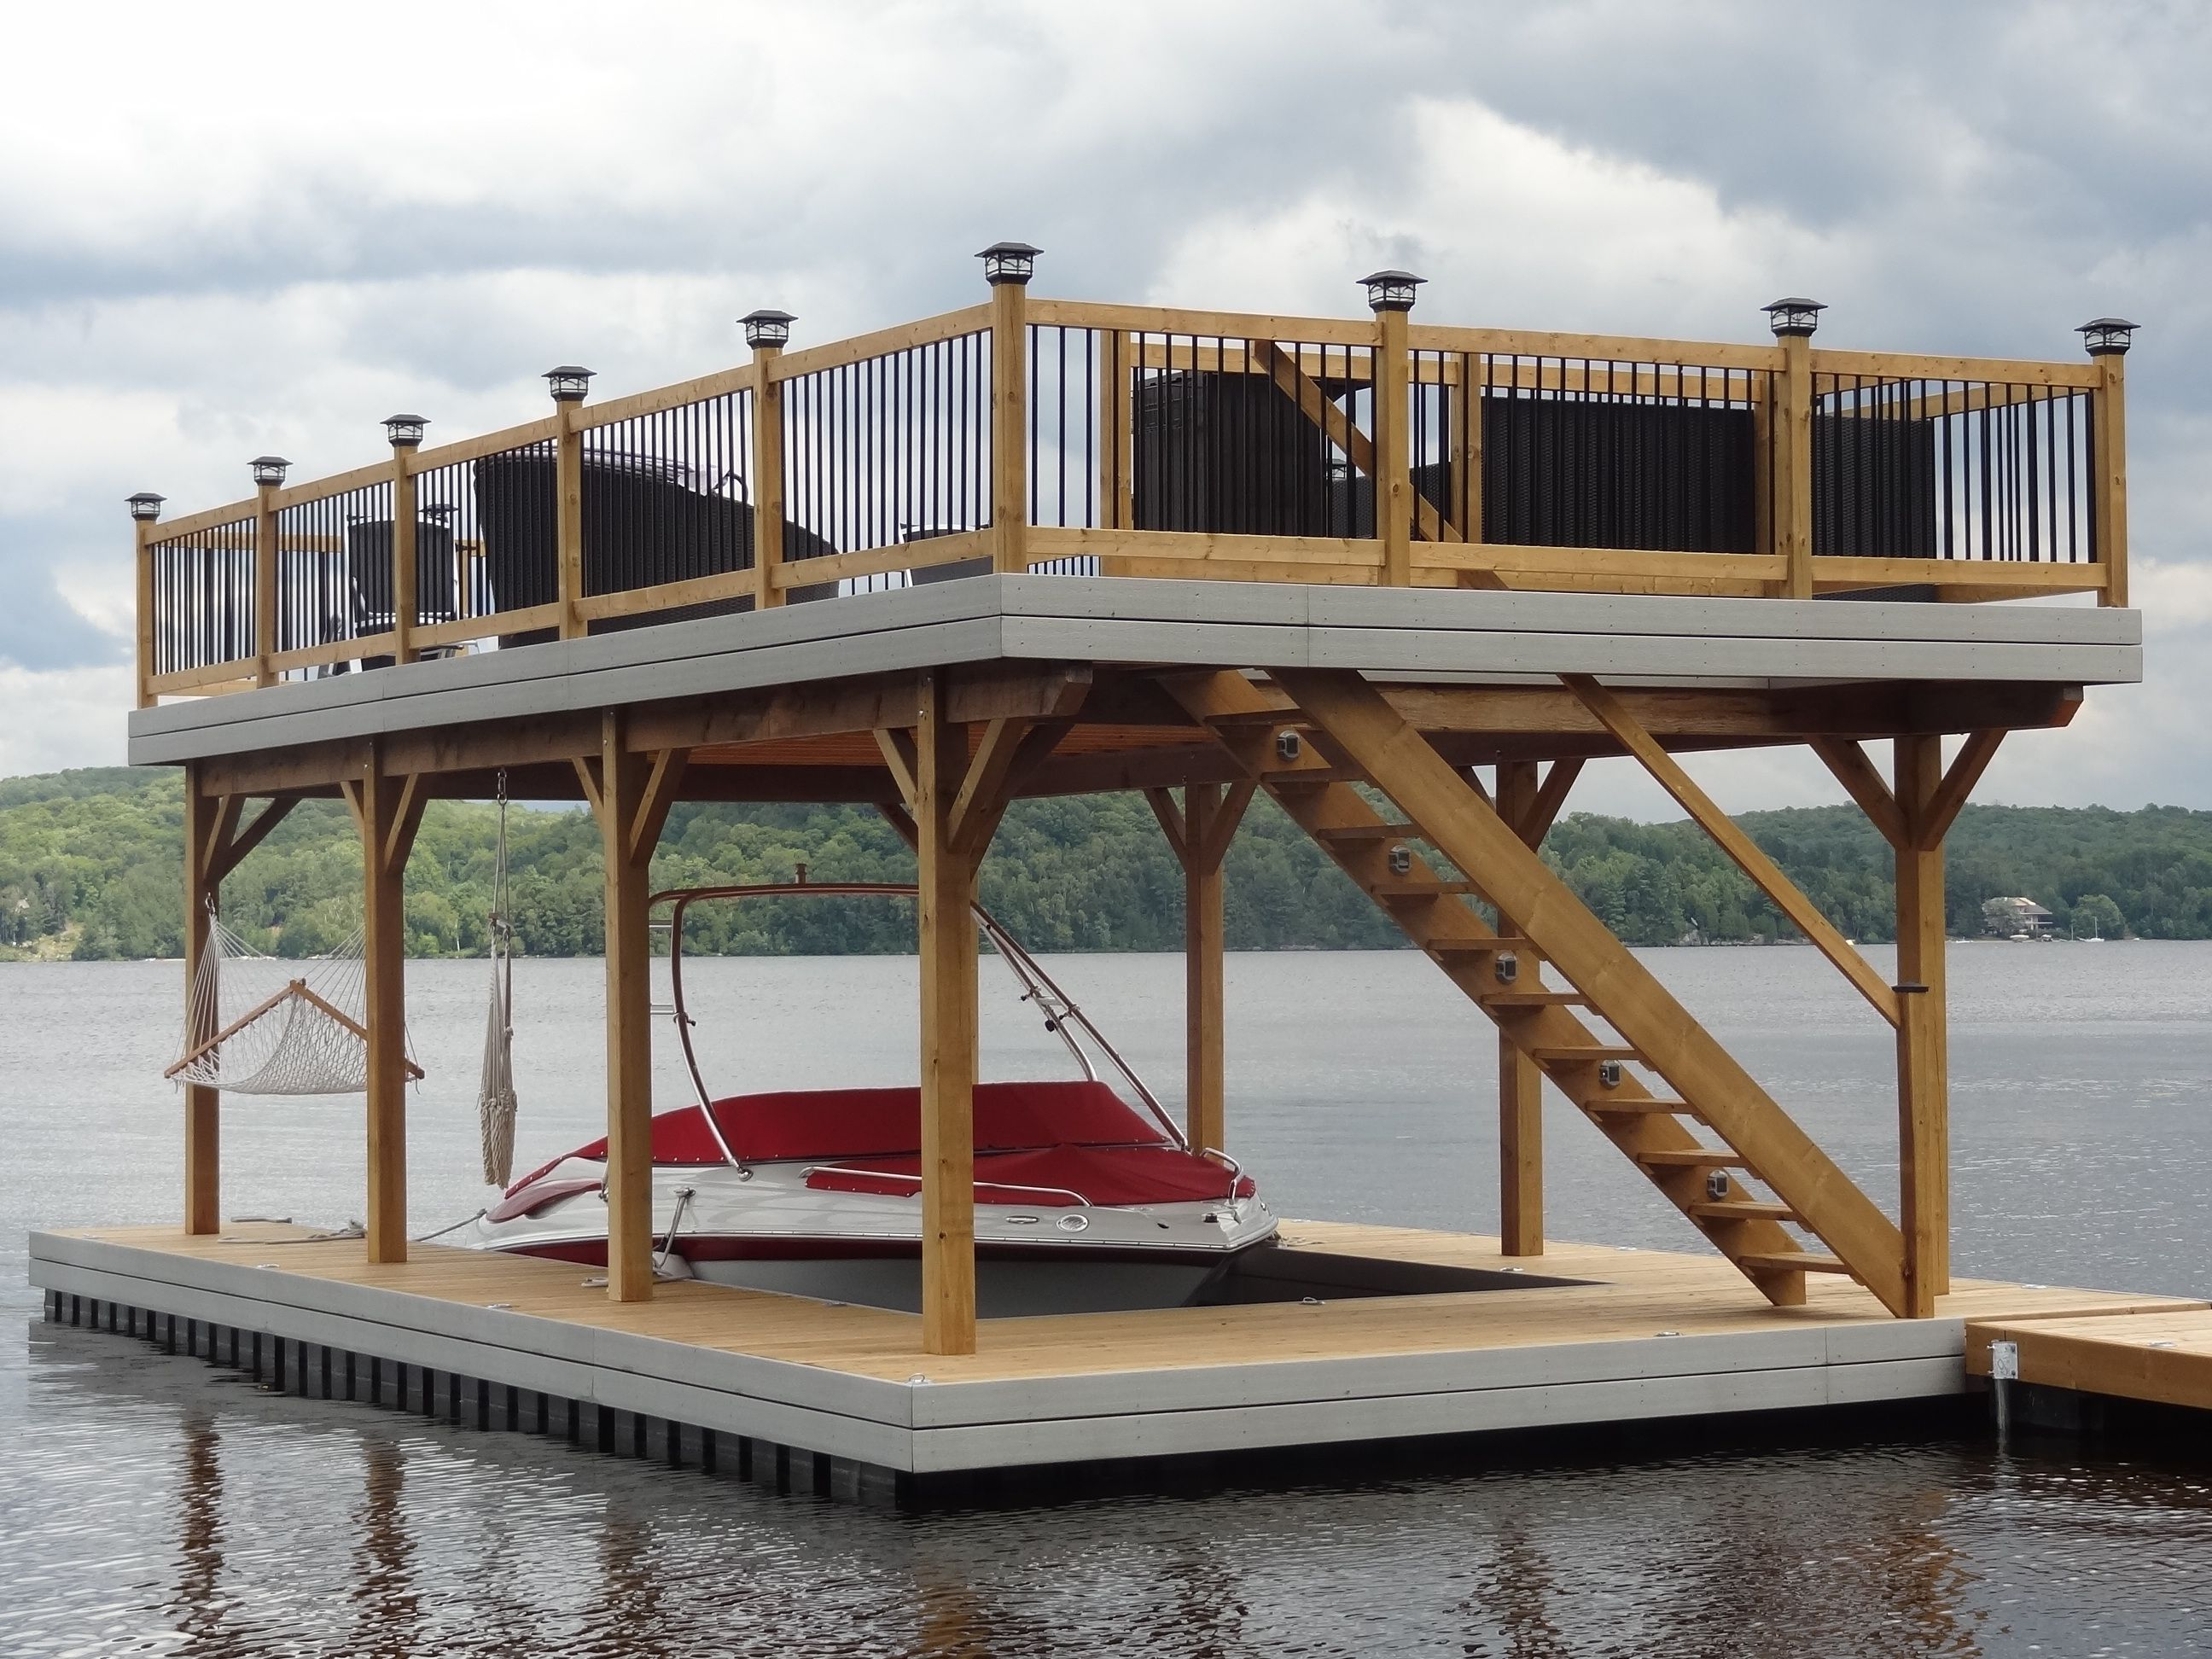 1000 ideas about boathouse on pinterest boat house lake house decorating and river house